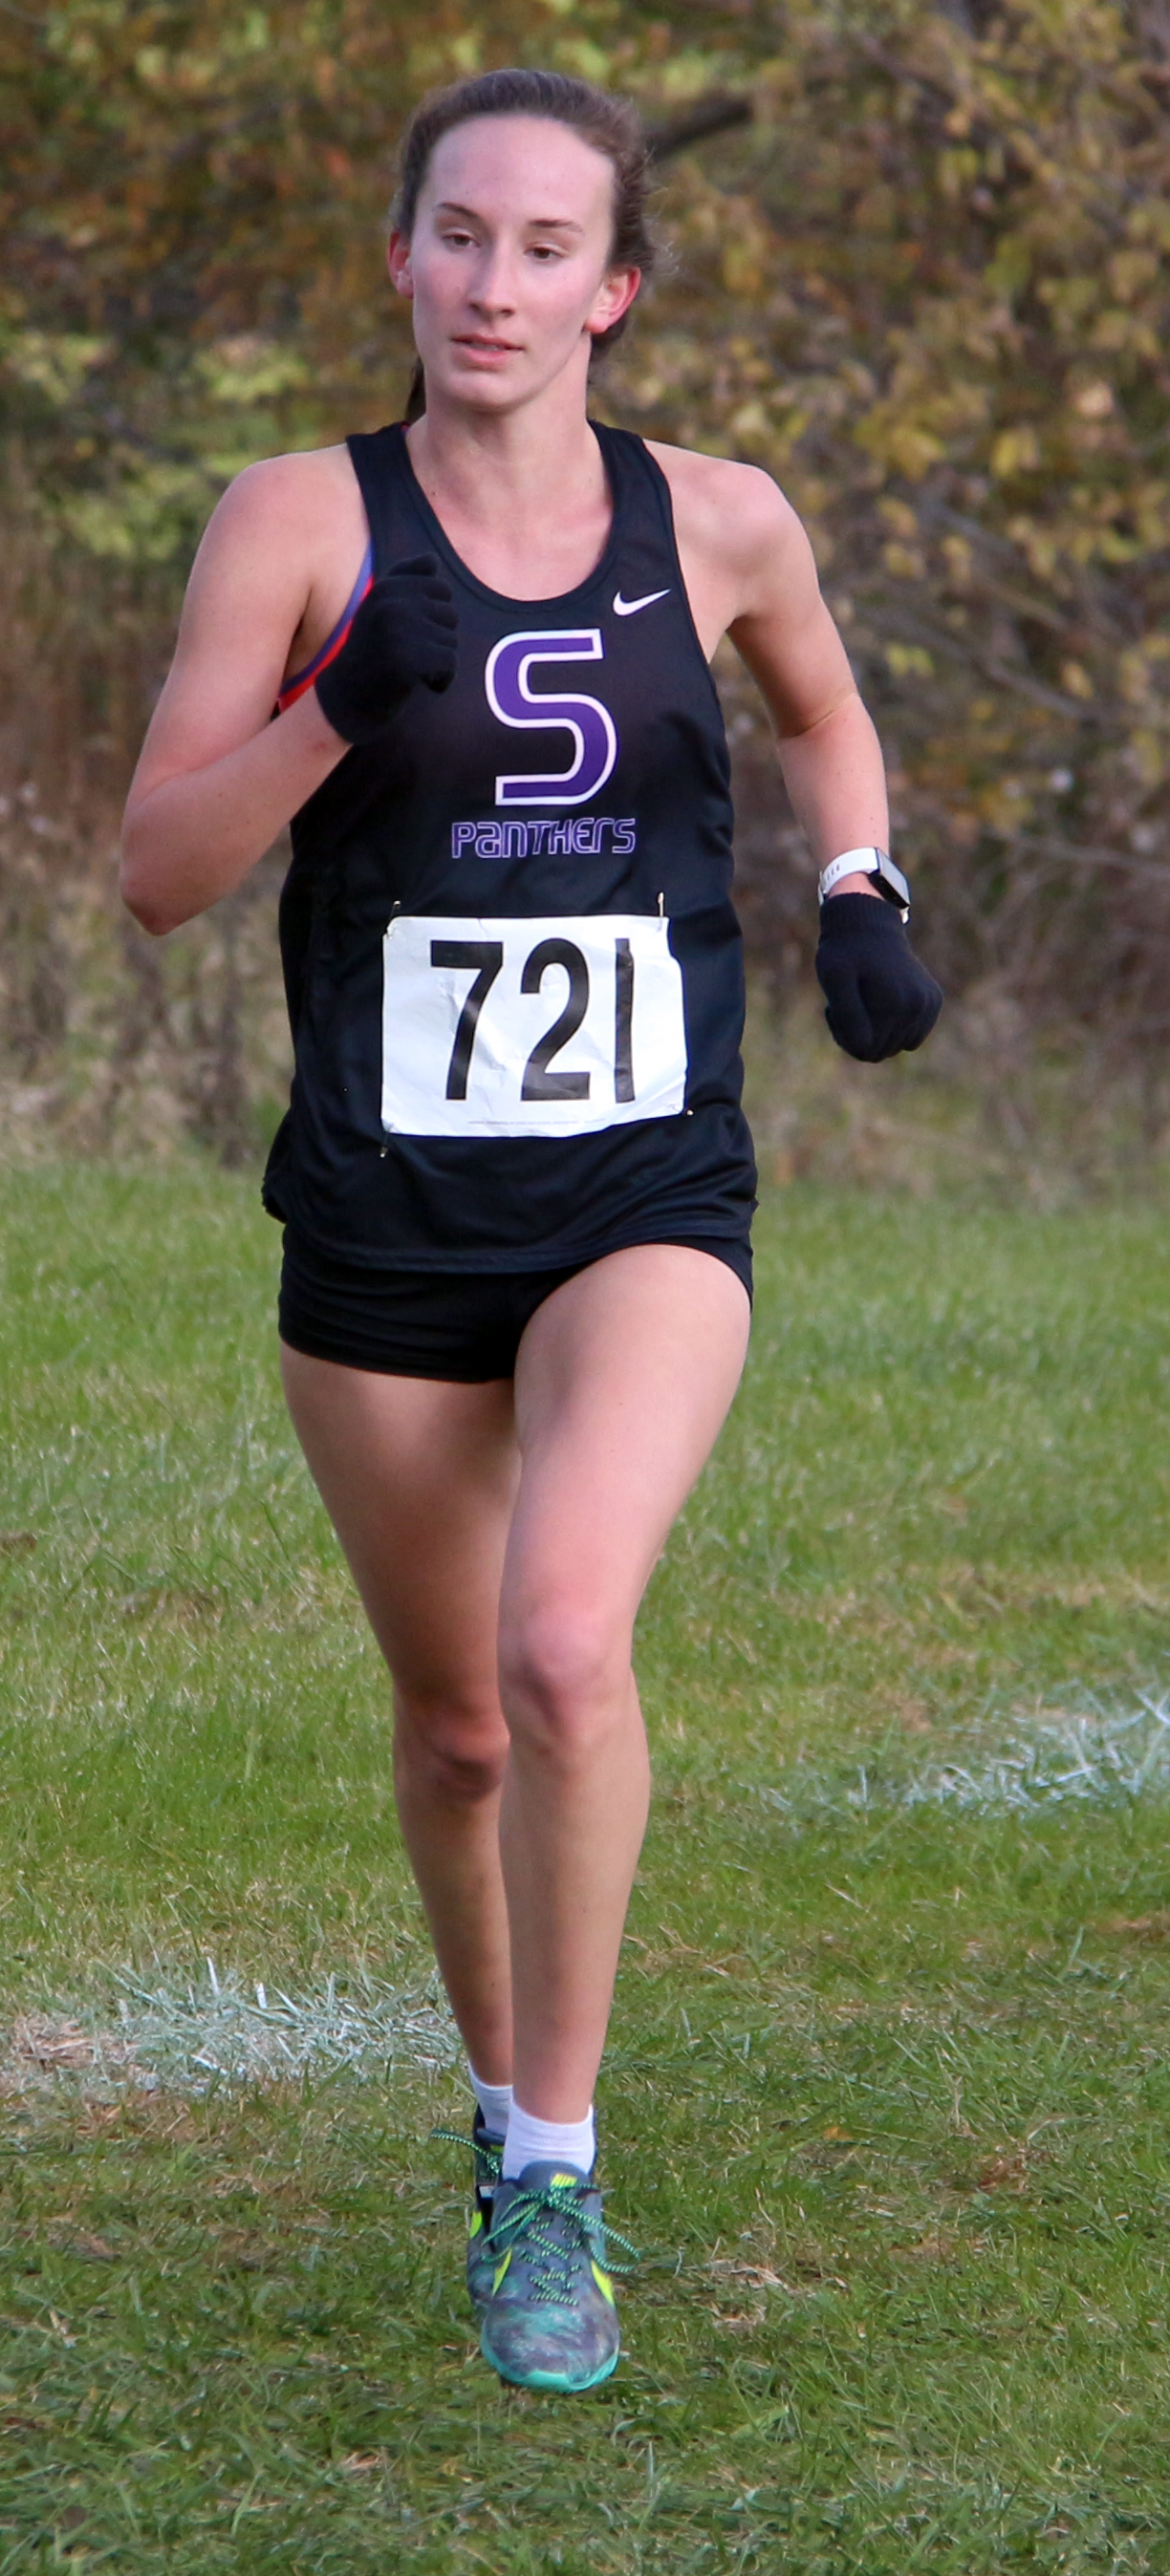 ROSS MARTIN/Citizen photo Park Hill South senior Marti Heit heads toward the finish line of the Class 4 Sectional 4 race Saturday, Oct. 28 at Jesse James Fairgrounds in Kearney, Mo.